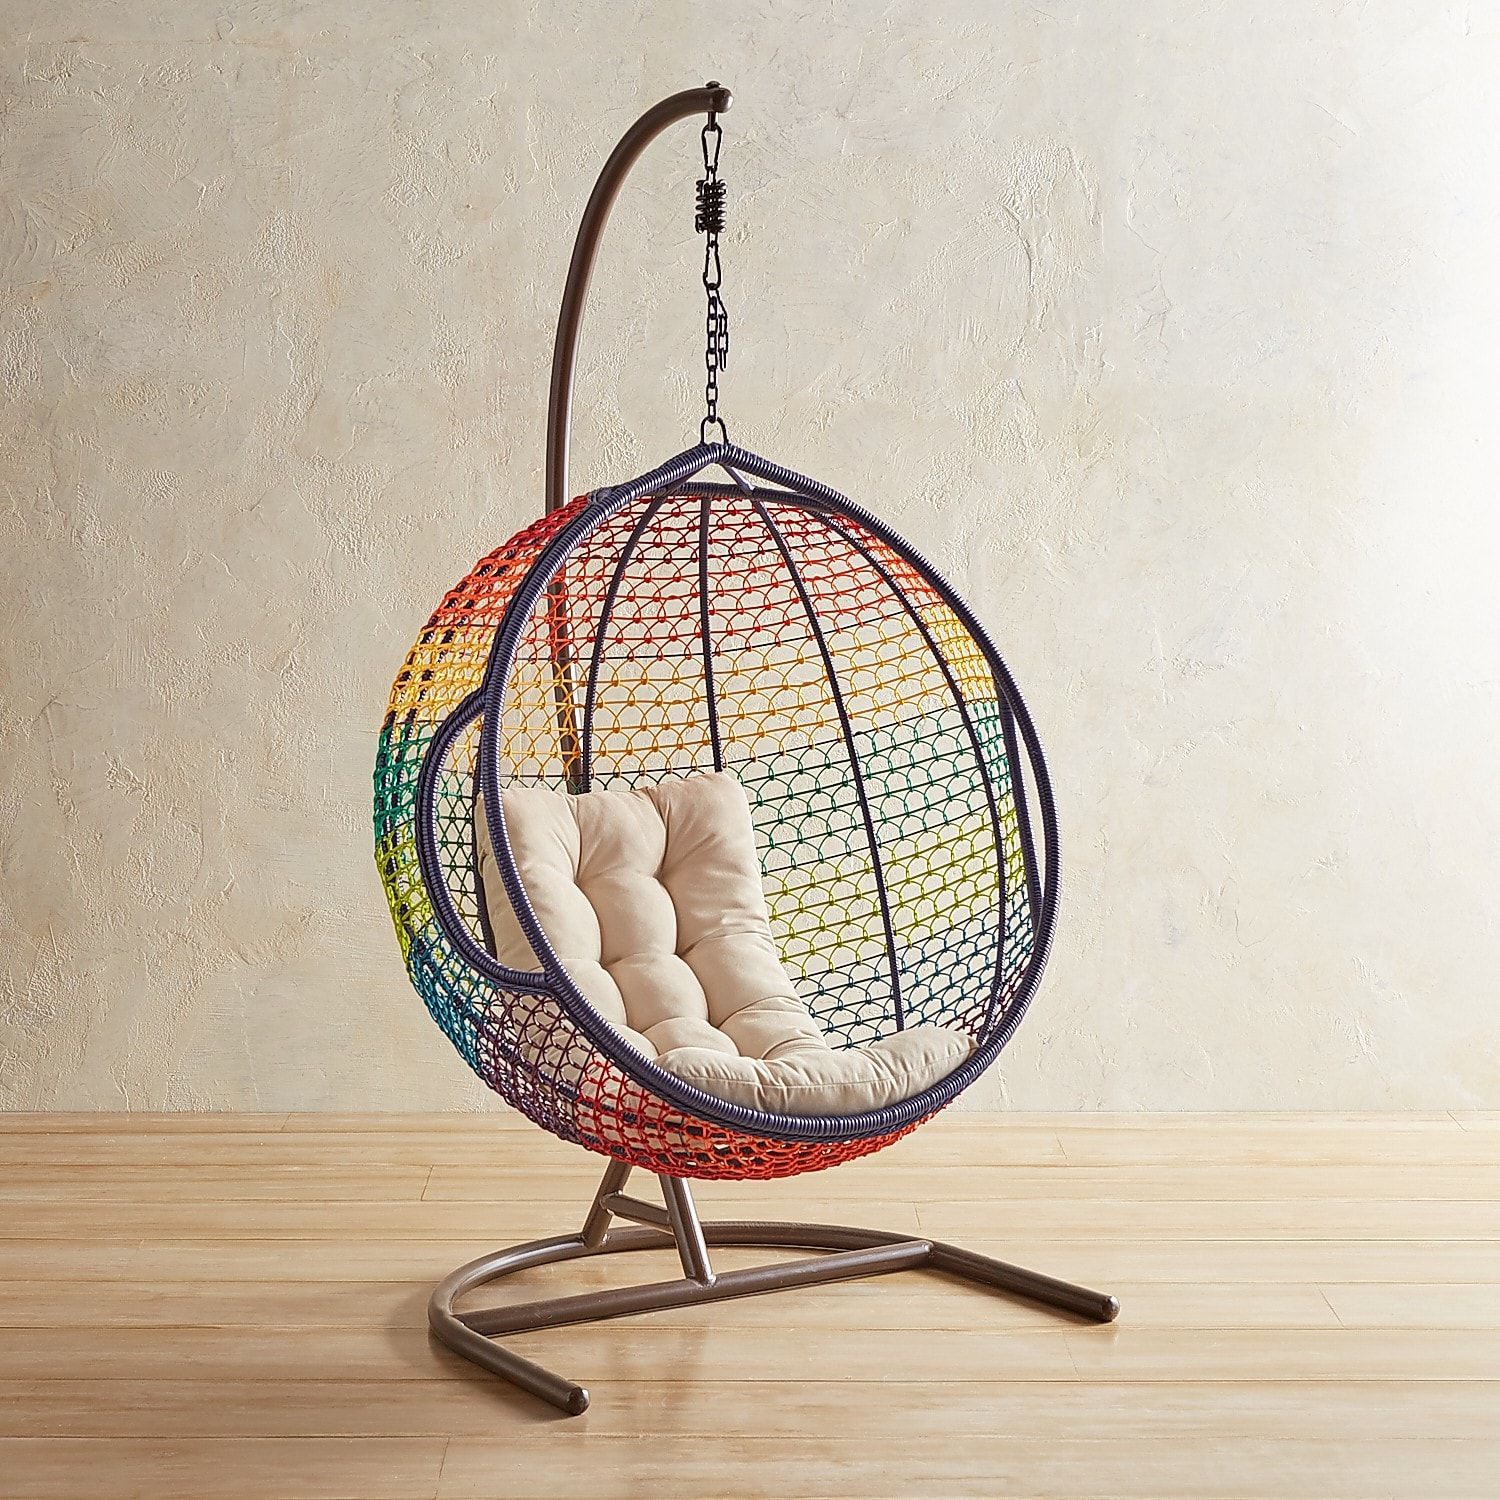 Swingasan Rainbow Ombre Hanging Chair Hanging Chair Swinging